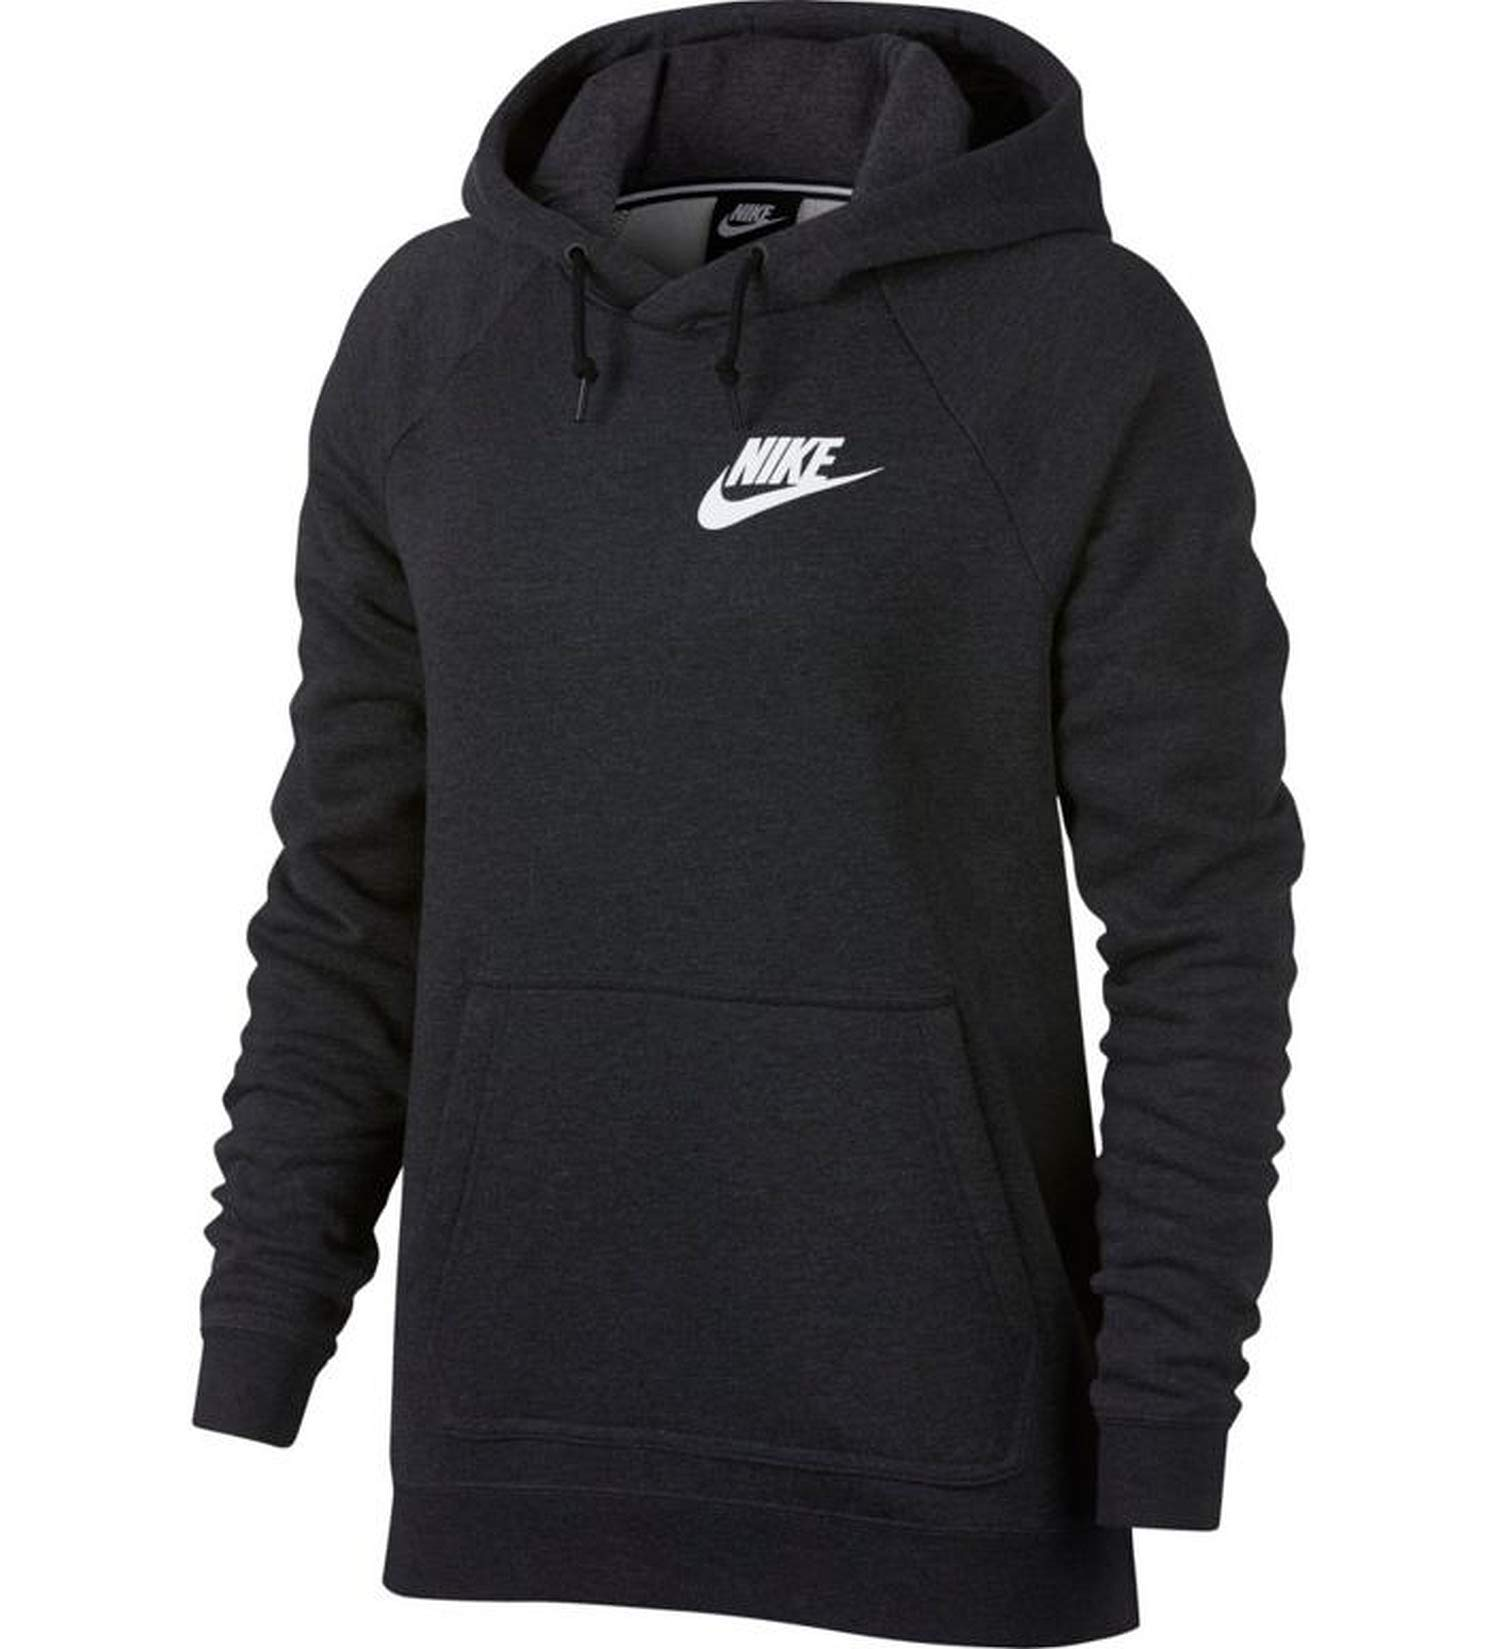 Nike Sportswear Rally Women's Hoodie (Small, Black Heather/White)